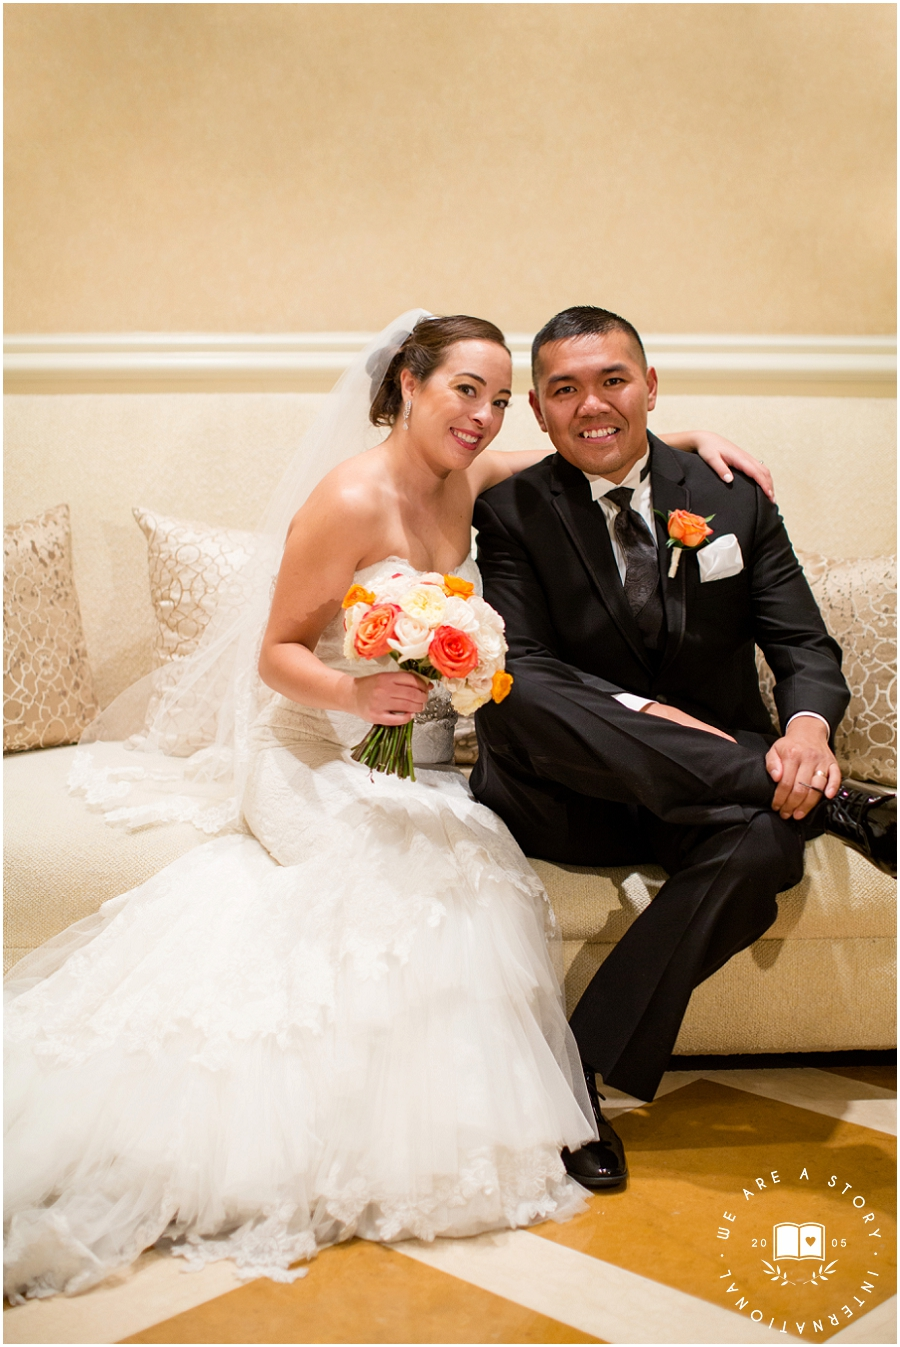 Four Seasons wedding photographer Las Vegas _ We Are A Story wedding photographer_2499.jpg